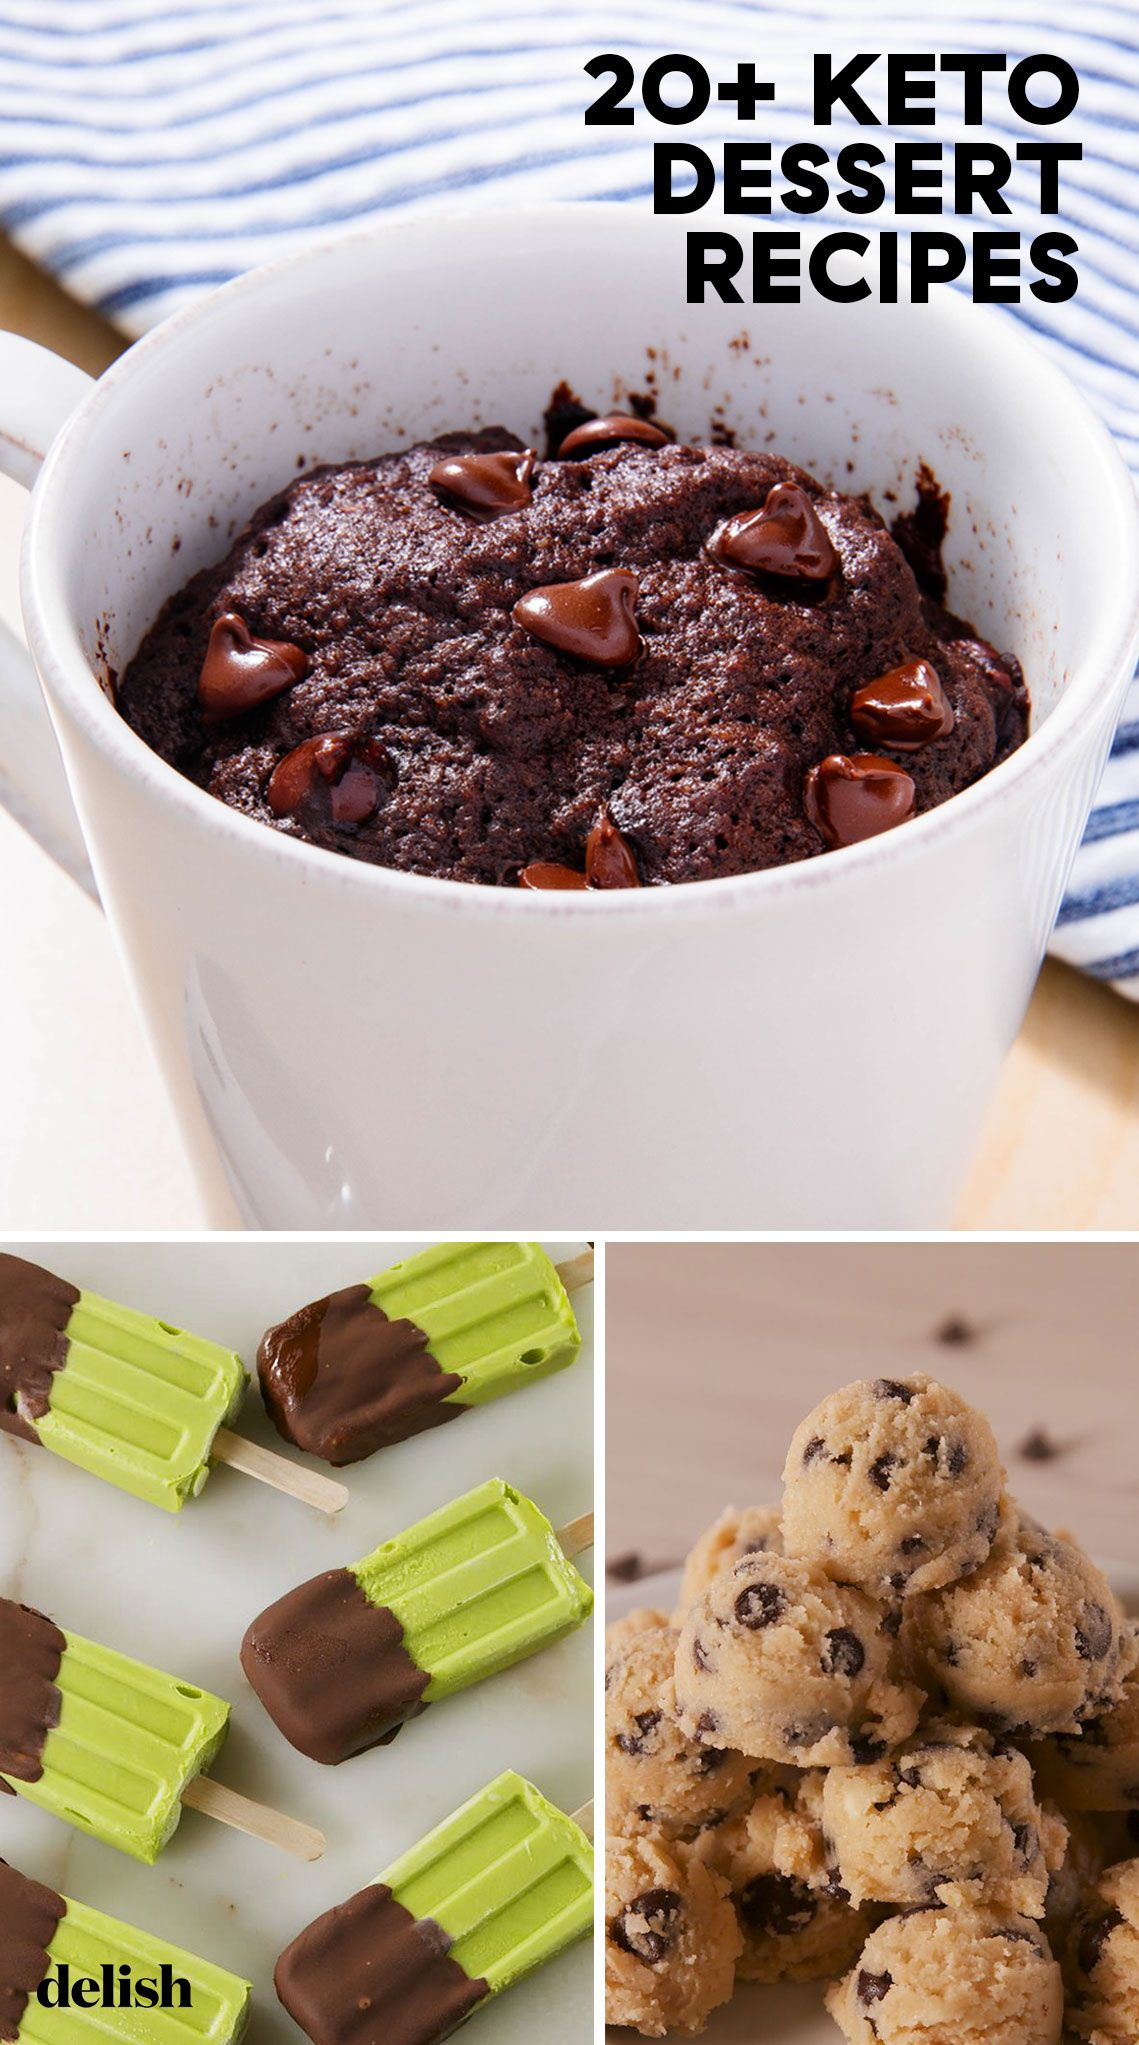 Keto-Friendly Dessert Recipes For Cheap Ebay